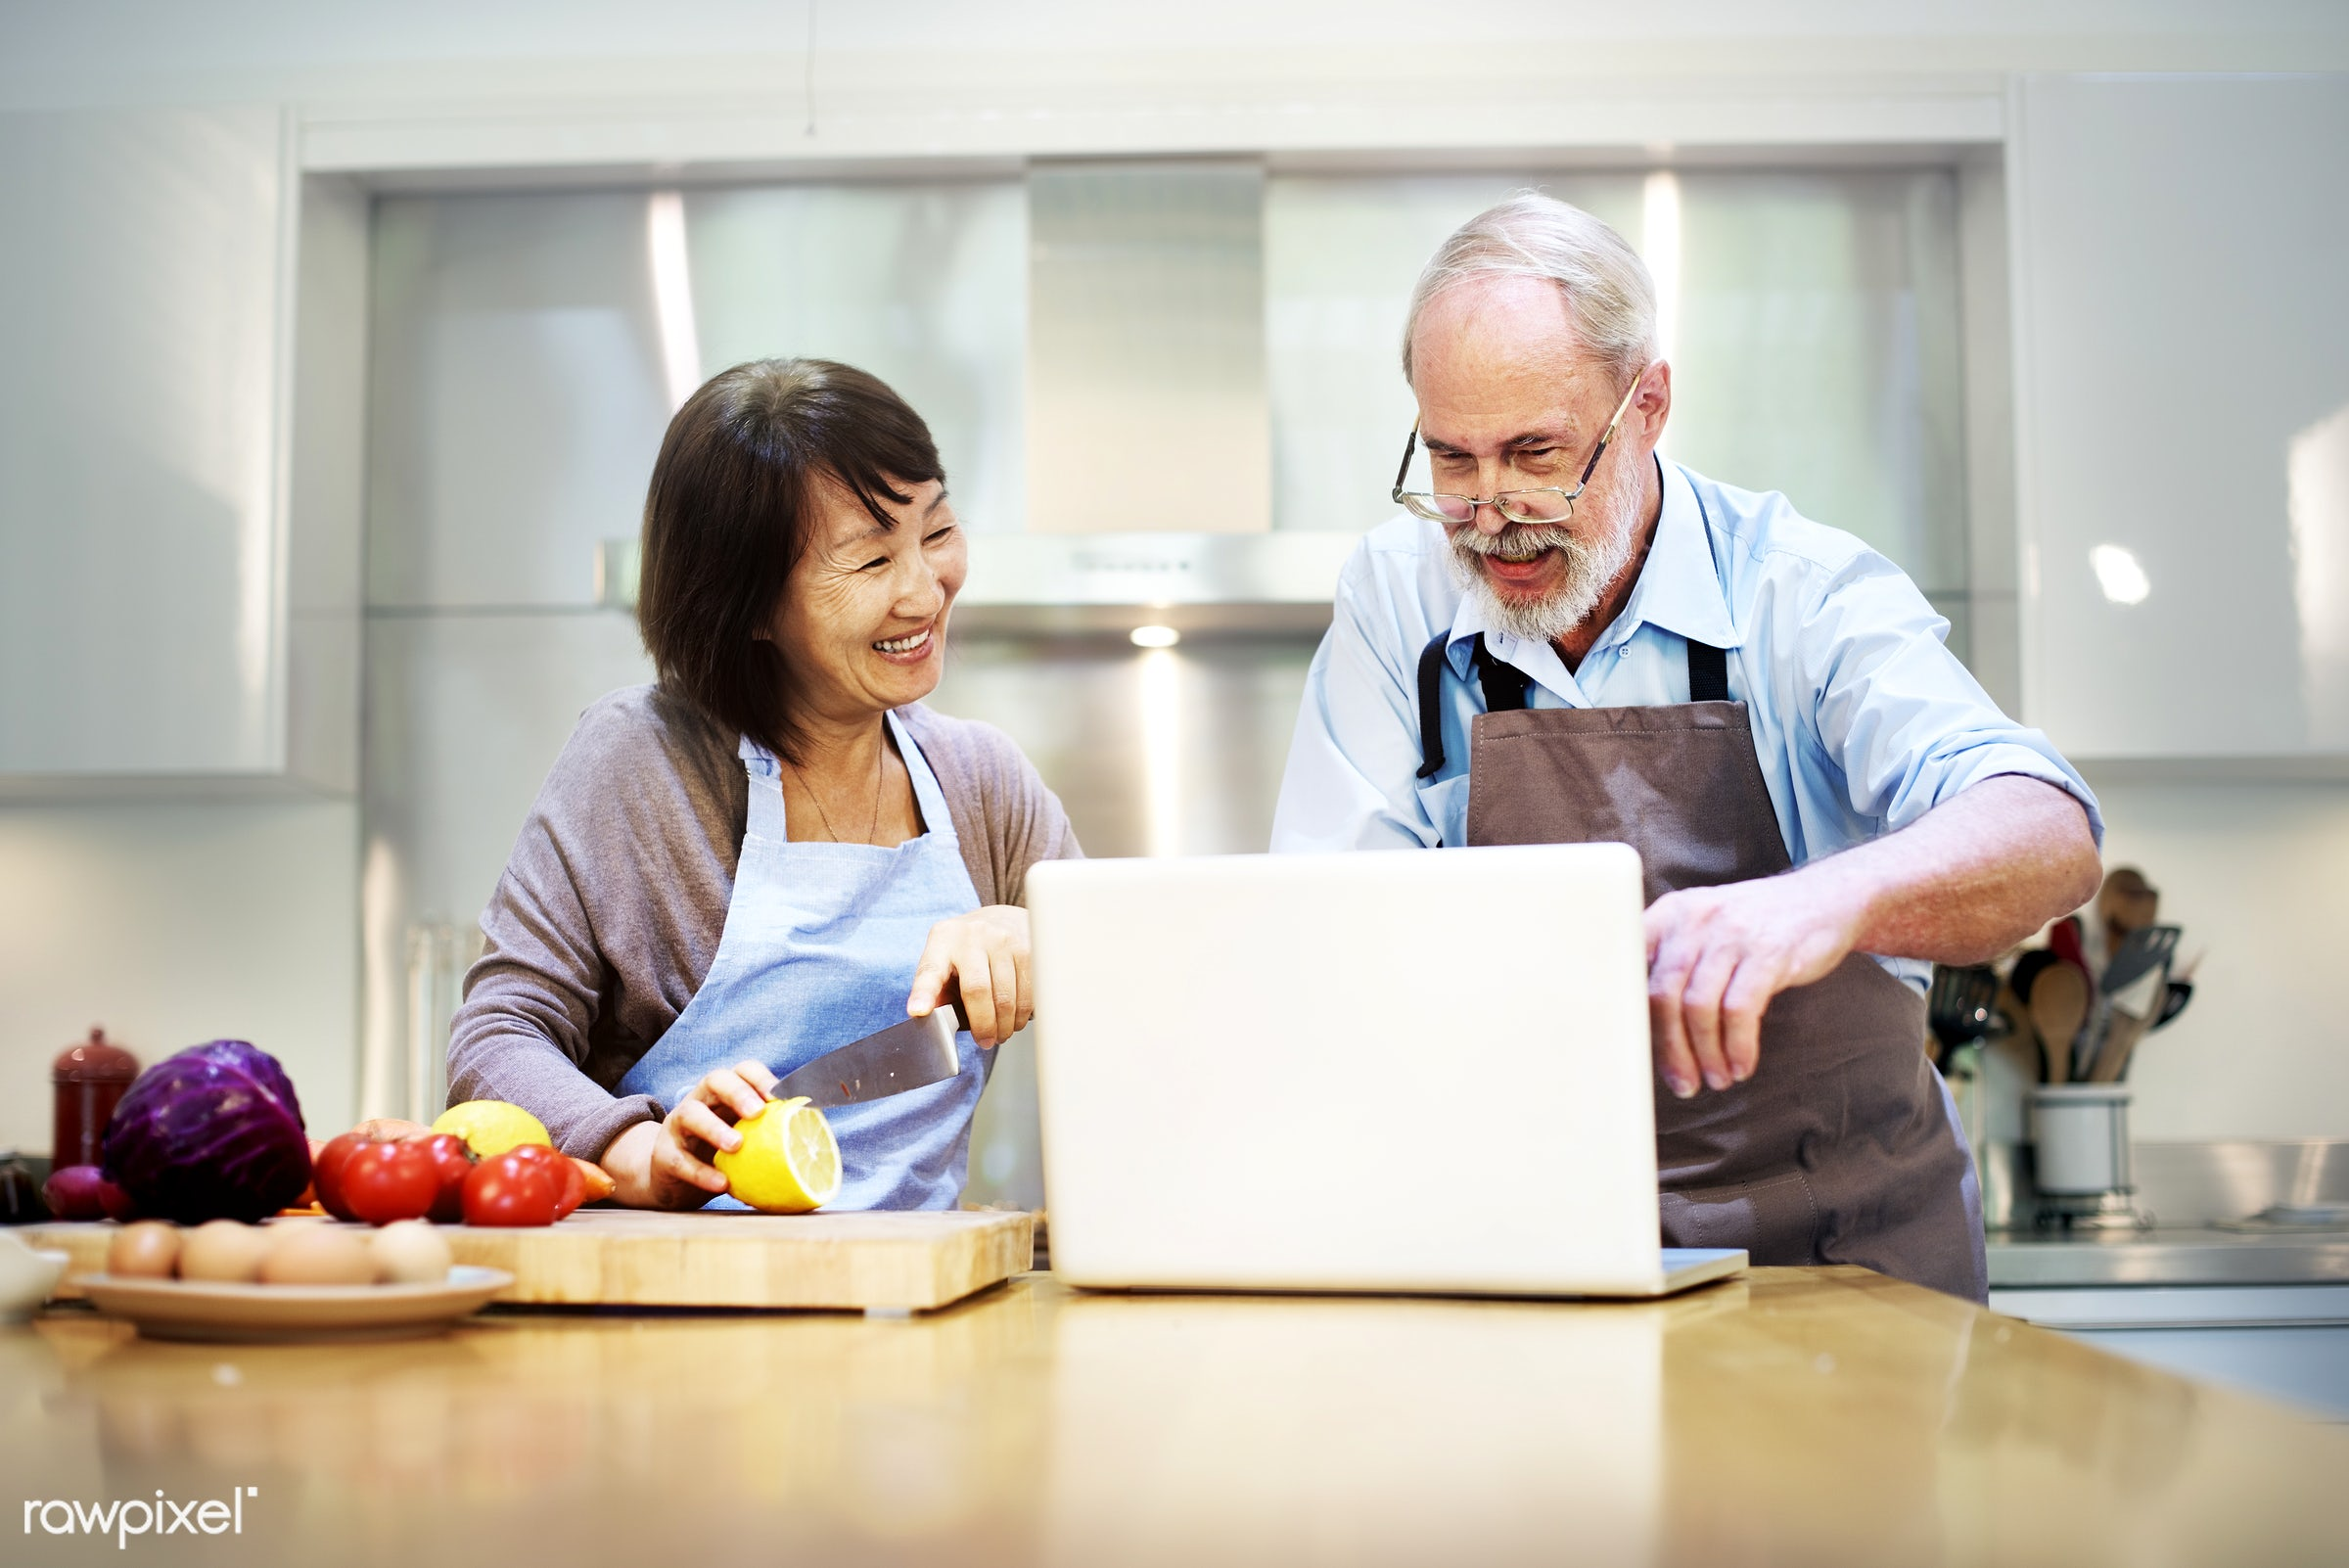 activity, asian ethnicity, bonding, casual, cheerful, chef, communication, connection, cookery, cookhouse, cooking, couple,...